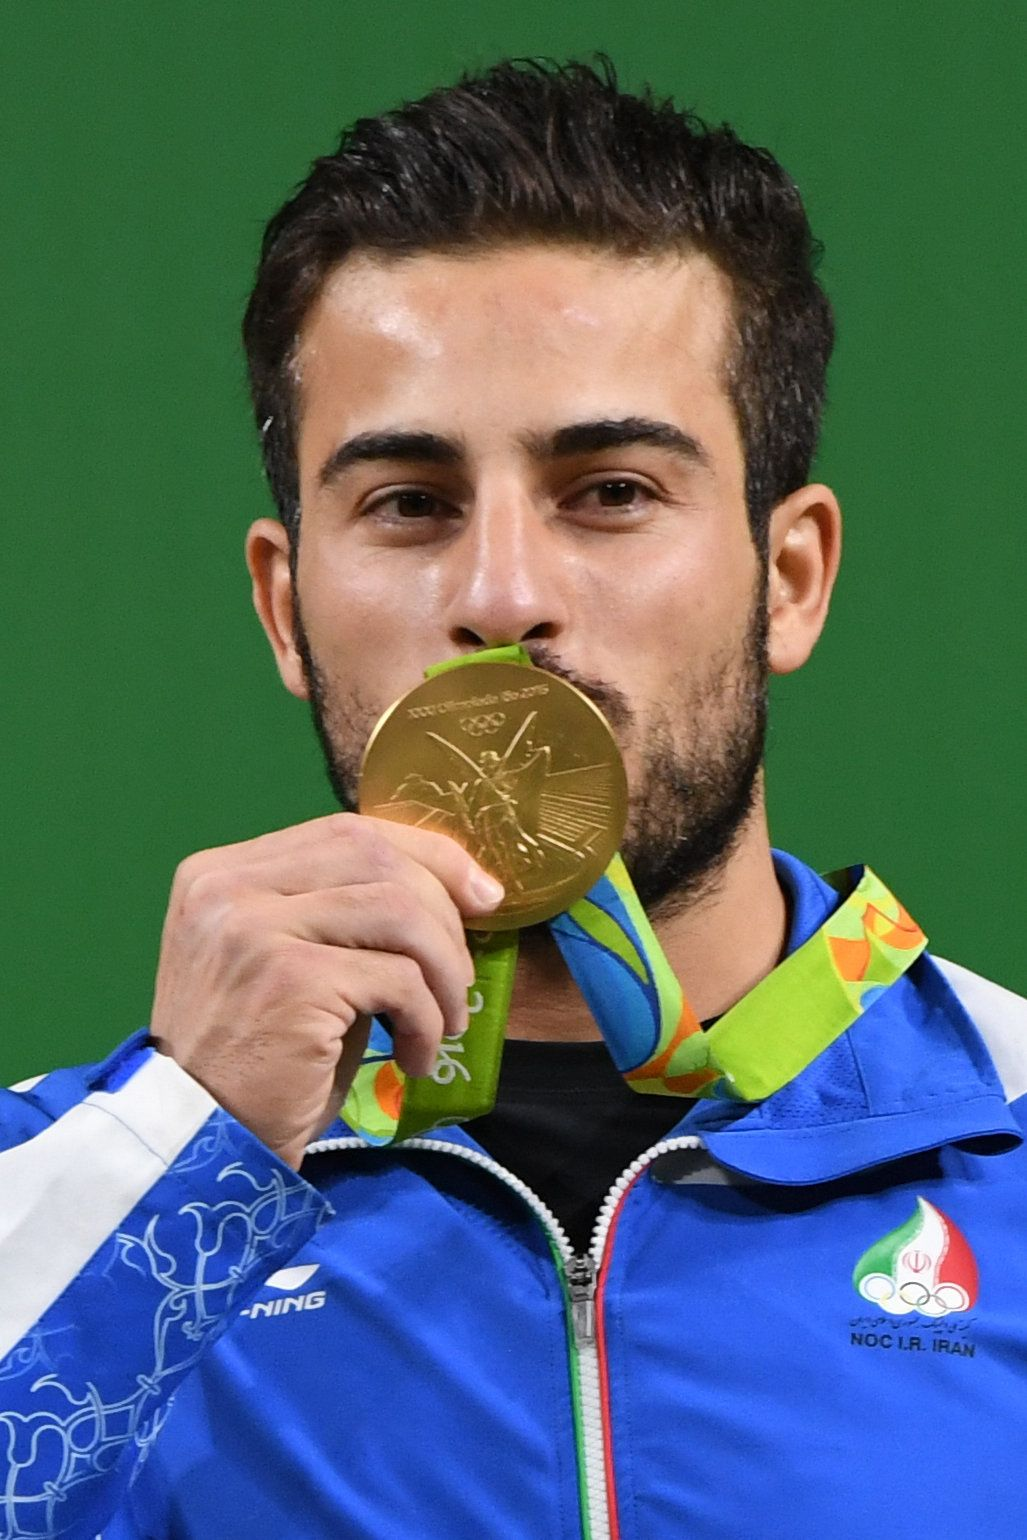 Iran's gold medallist Kianoush Rostami poses on the podium after the men's weightlifting 85kg event during the Rio 2016 Olympics Games in Rio de Janeiro on August 12, 2016. / AFP / GOH Chai Hin        (Photo credit should read GOH CHAI HIN/AFP/Getty Images)